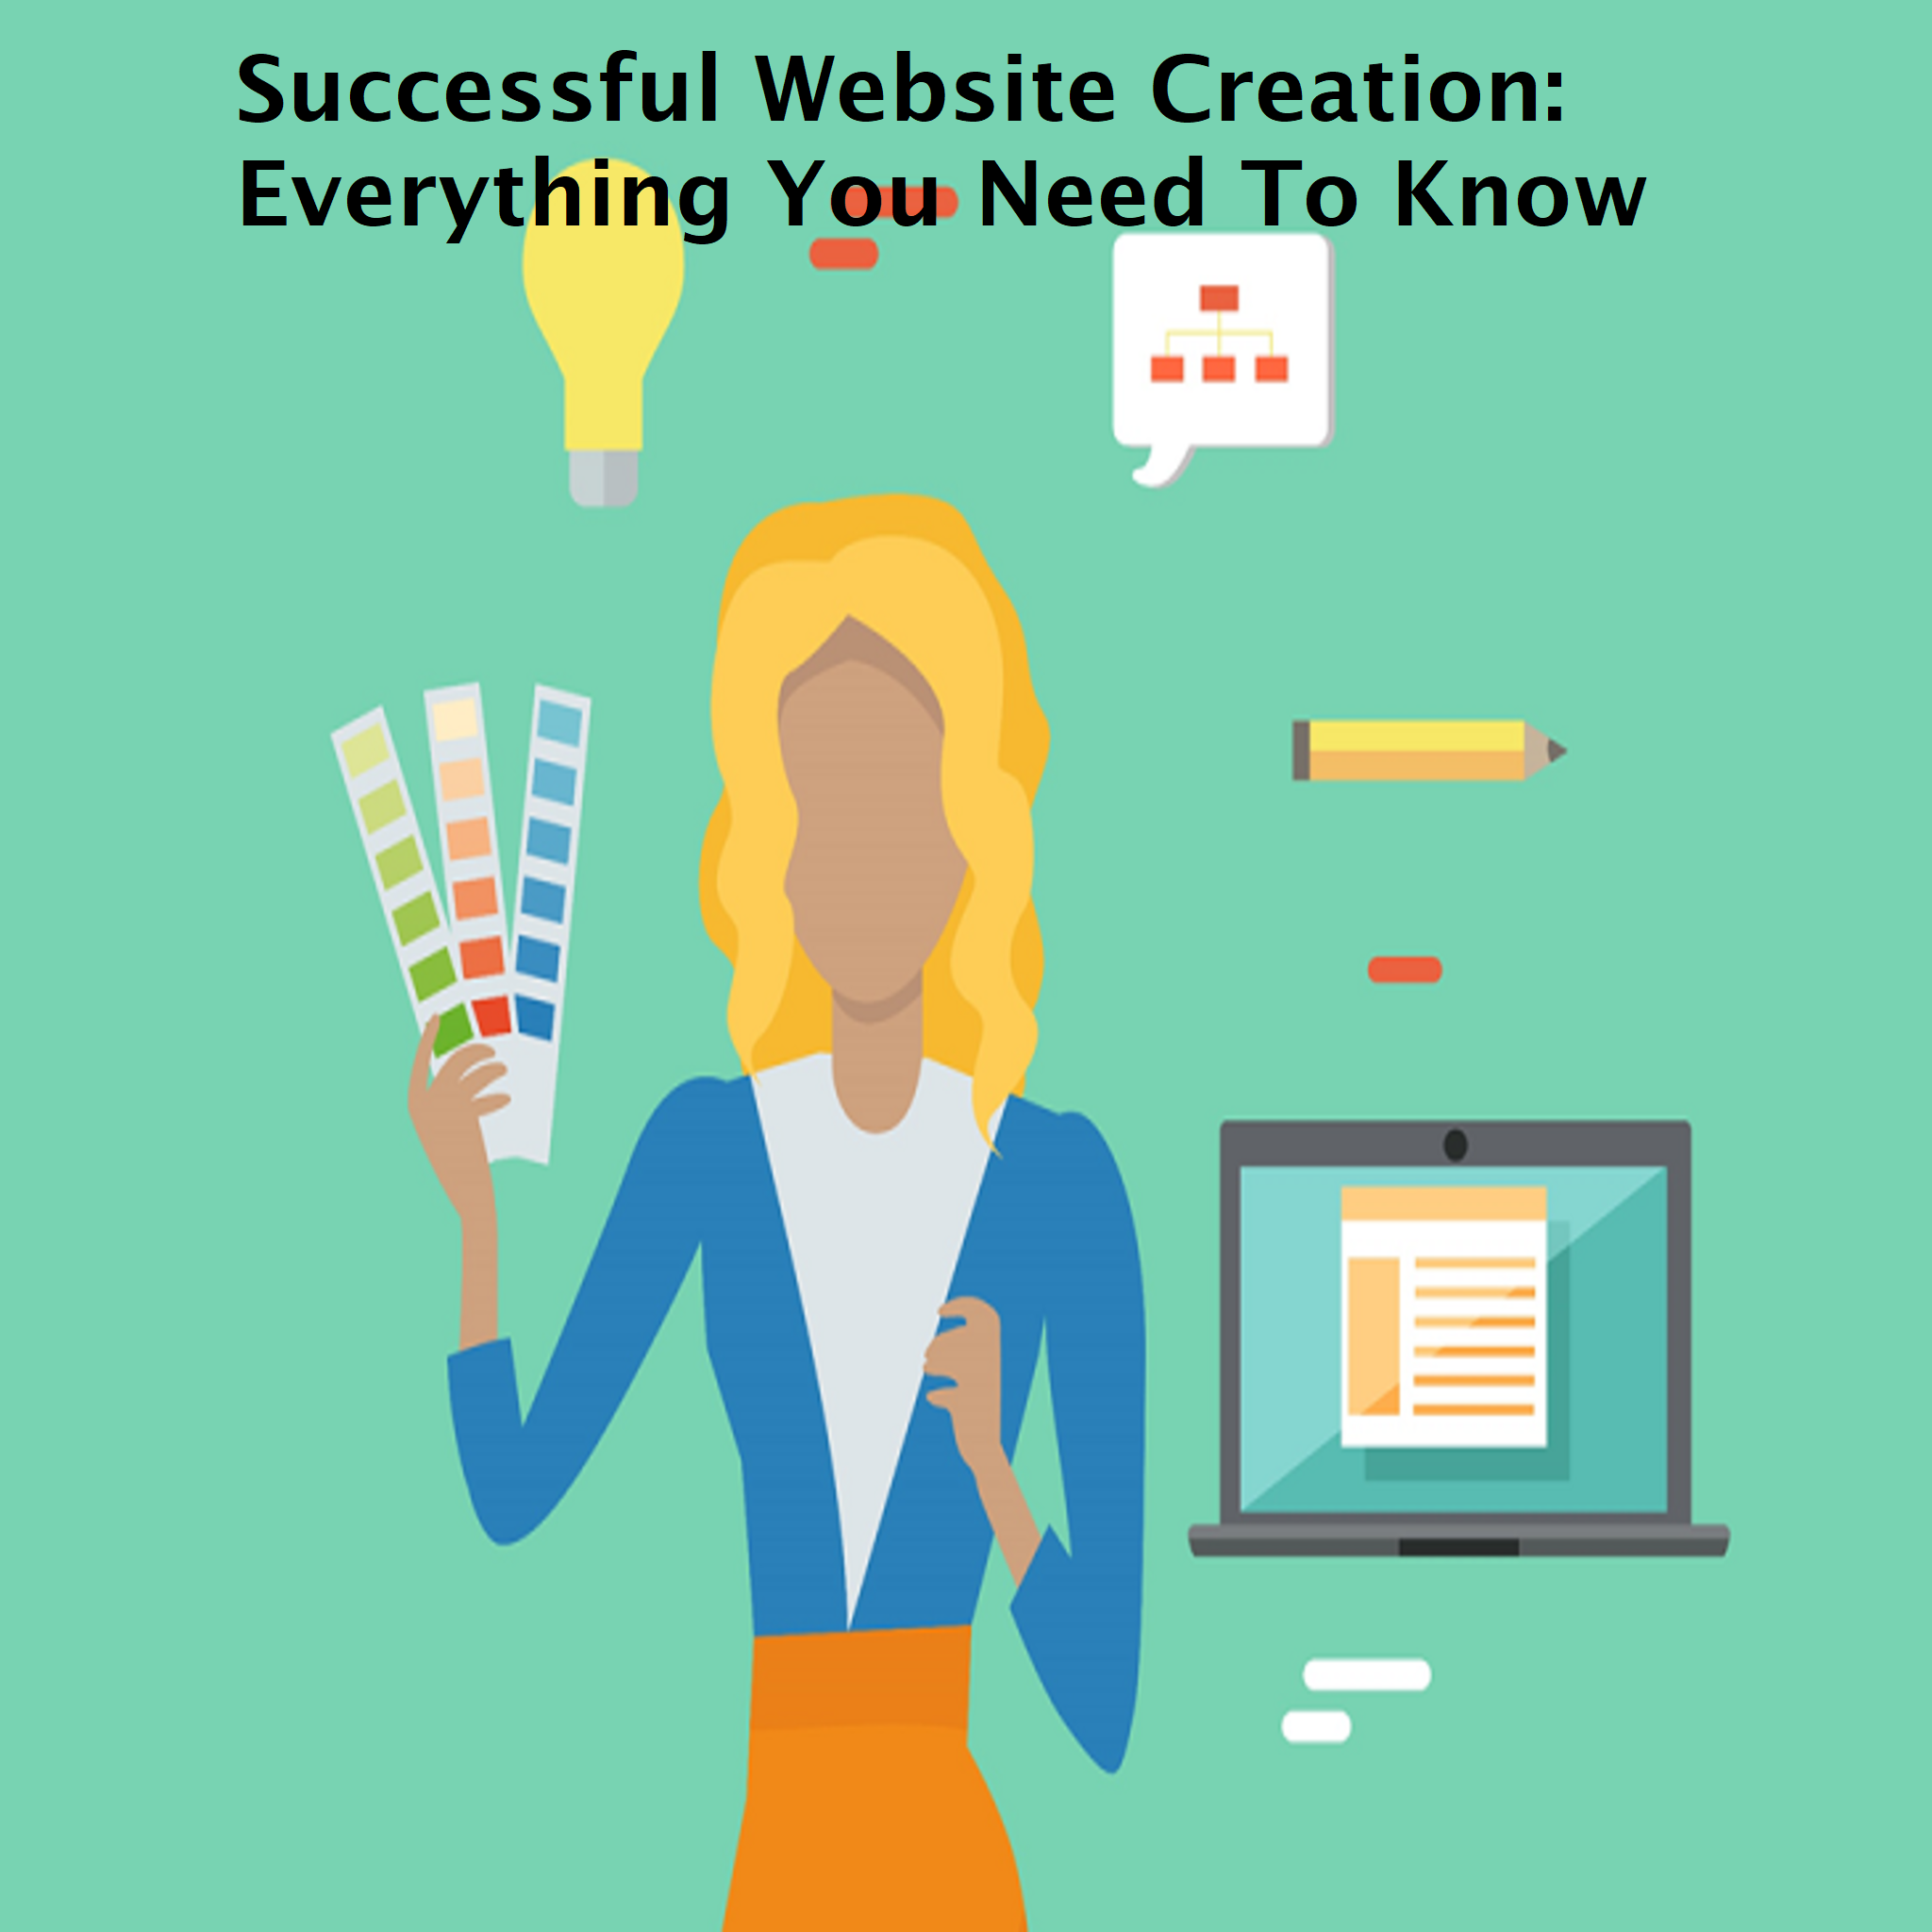 Successful Website Creation - Everything You Need To Know